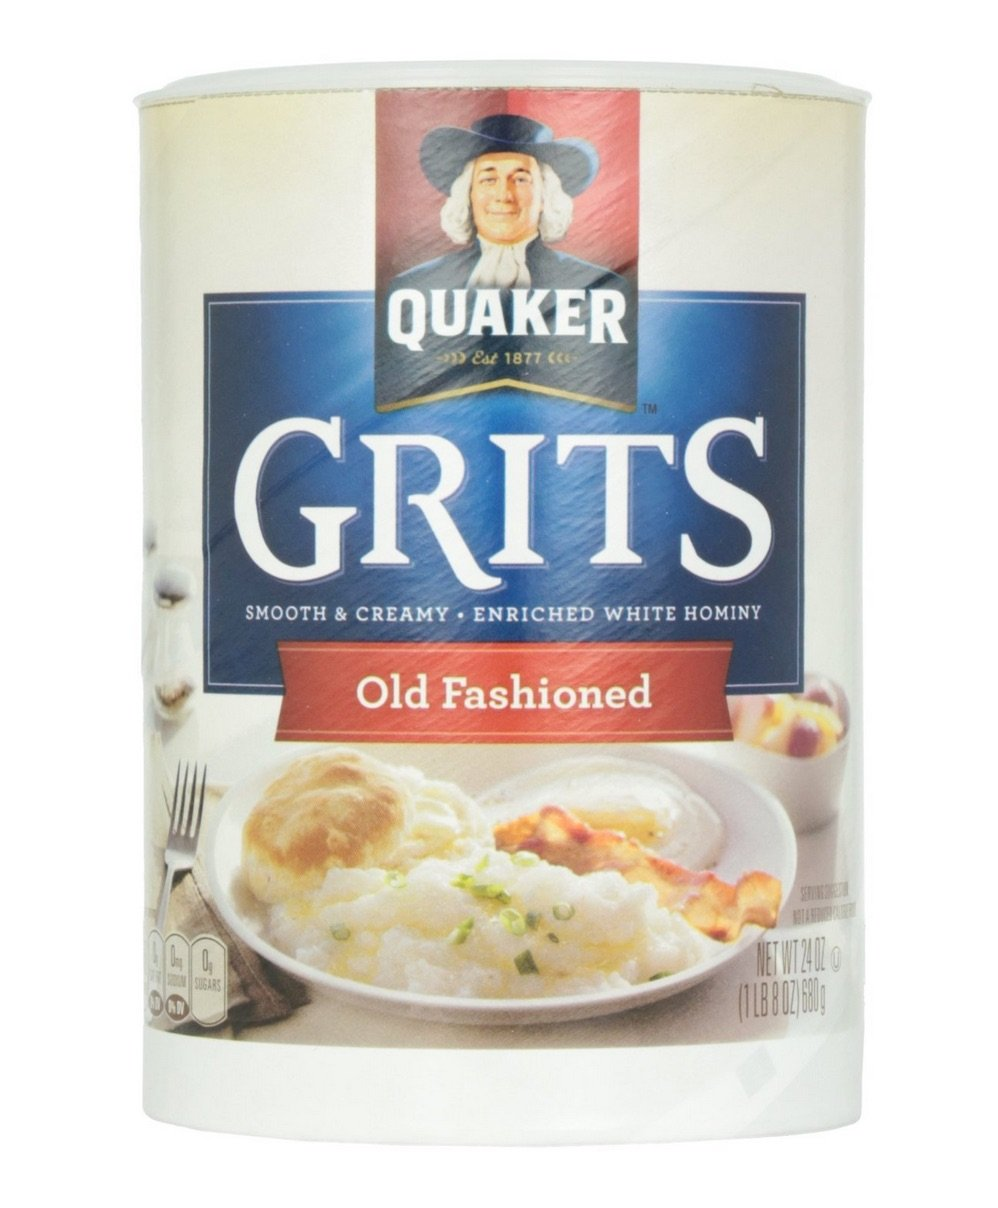 Quaker Old Fashioned Smooth & Creamy Grits Pack of 3, 24 oz Containers